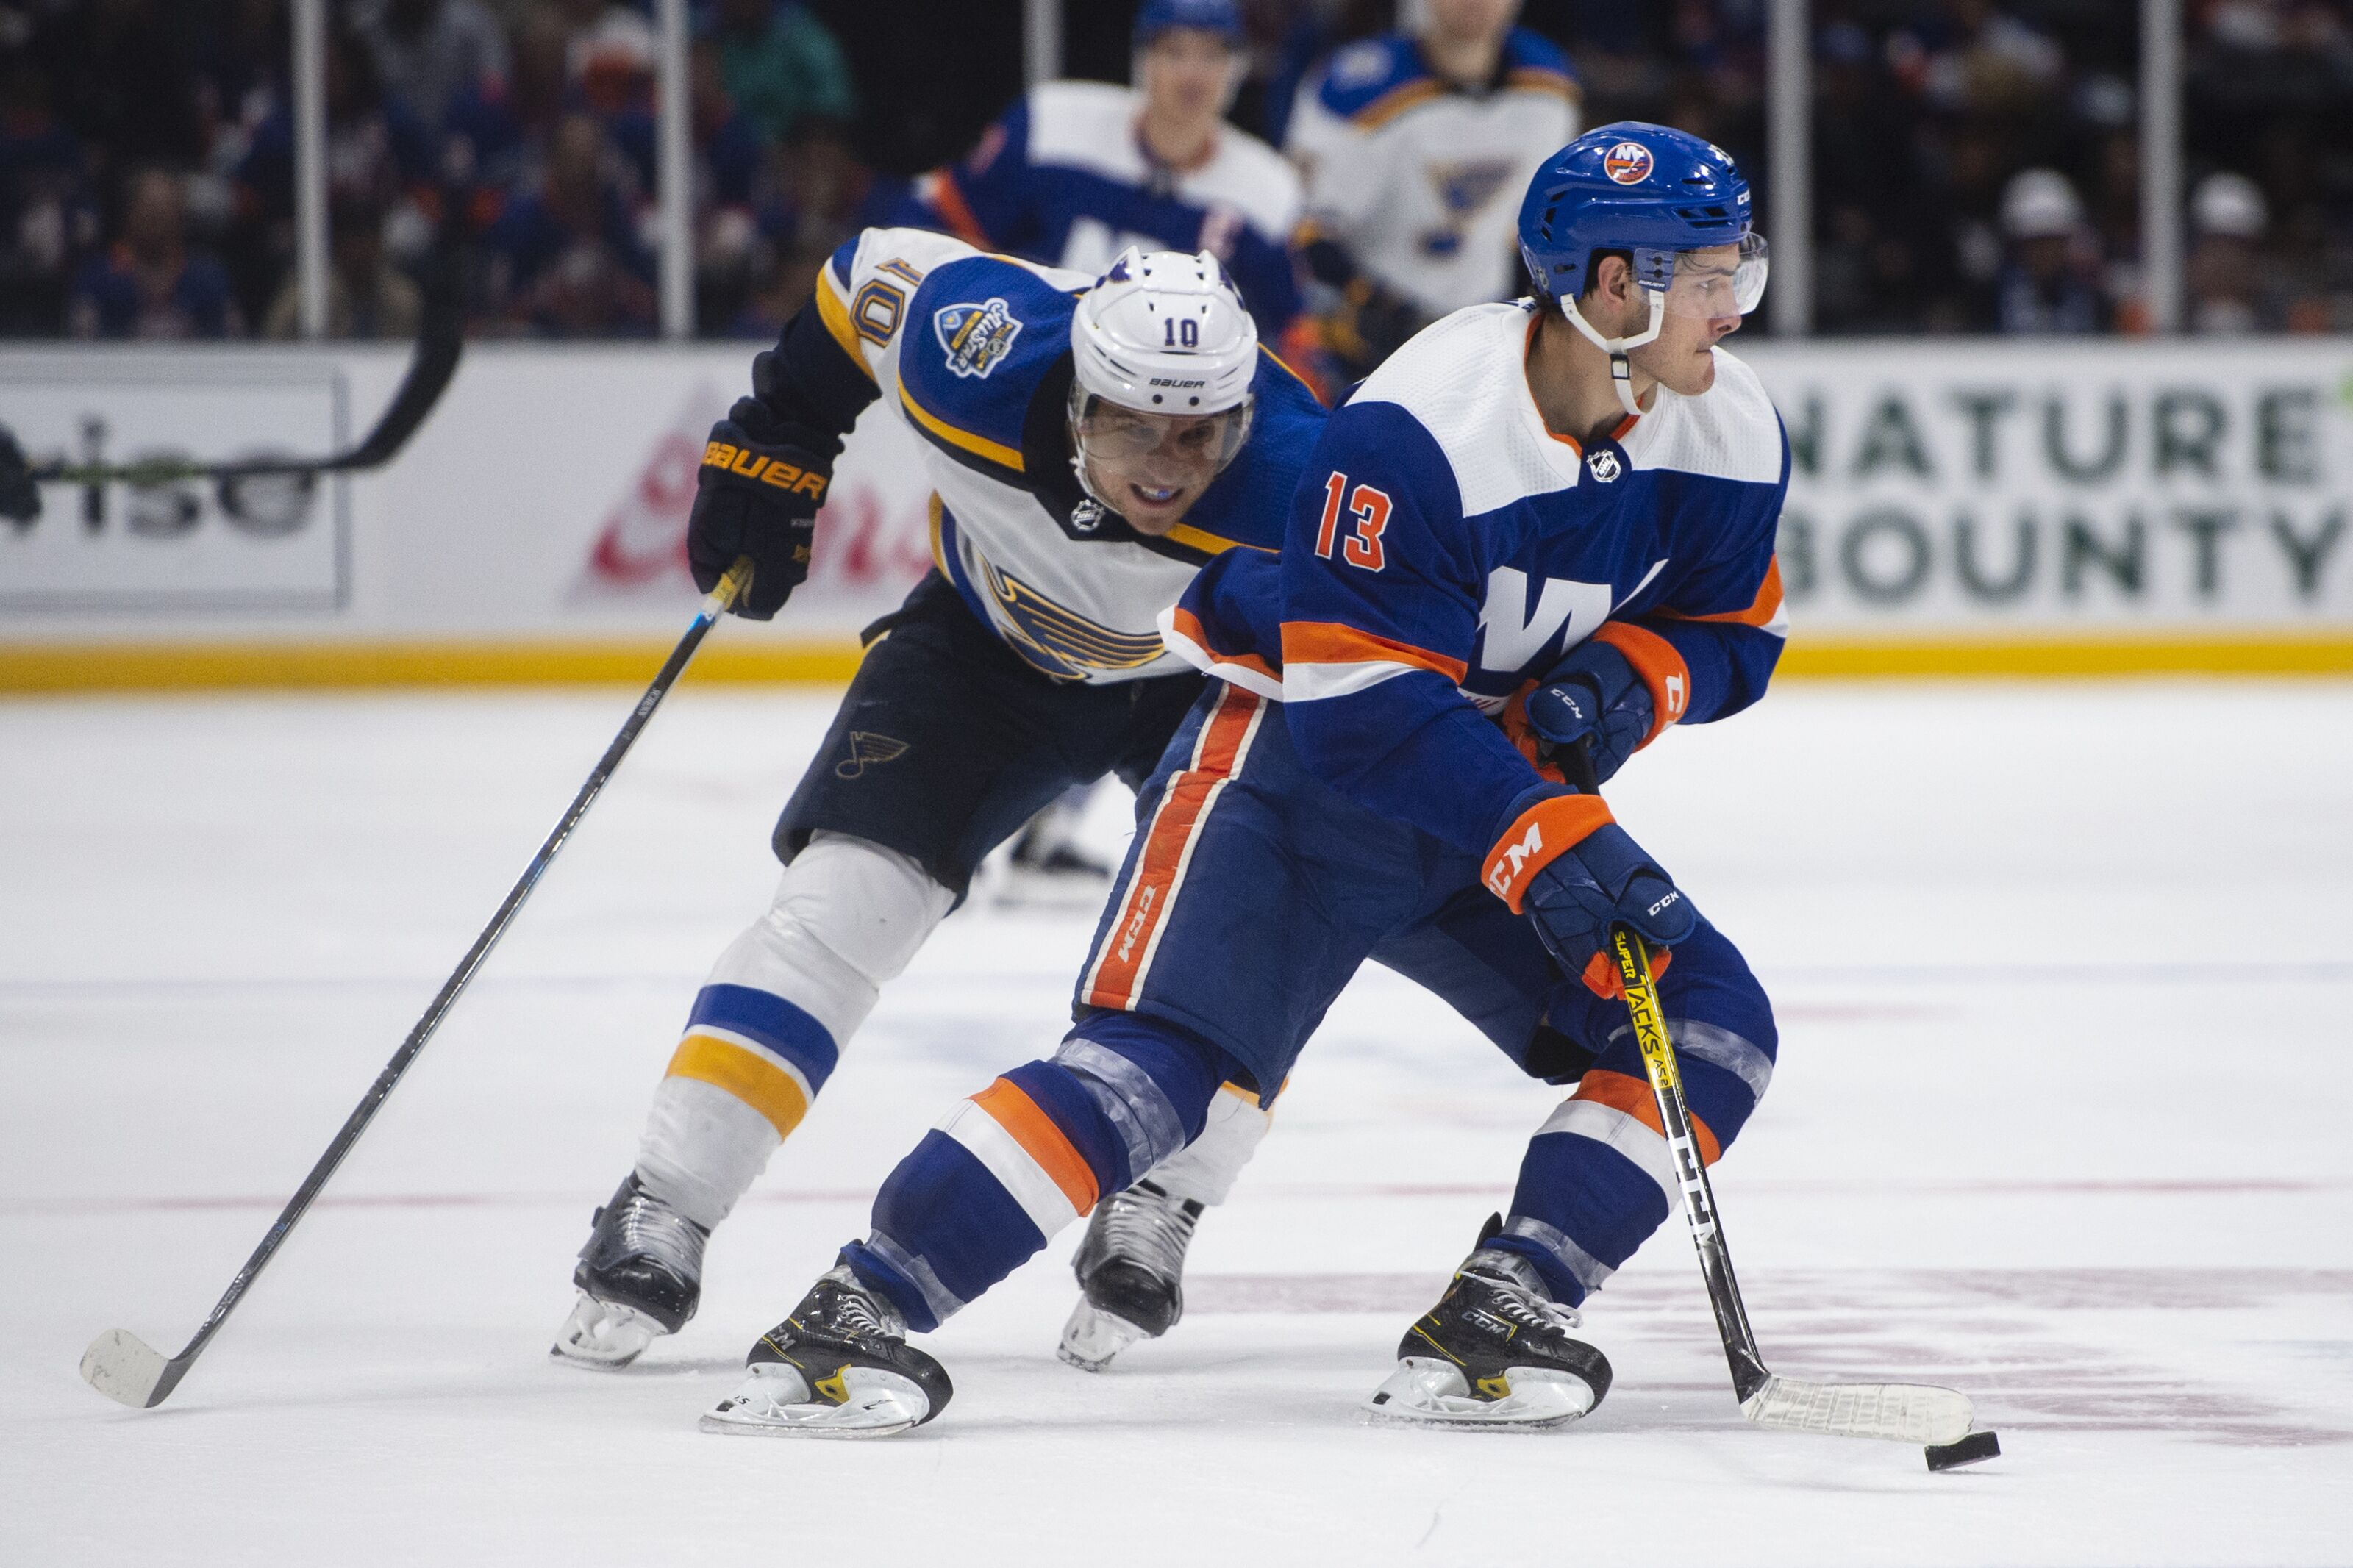 St. Louis Blues: First Line Offense Overshadows Bad Defense